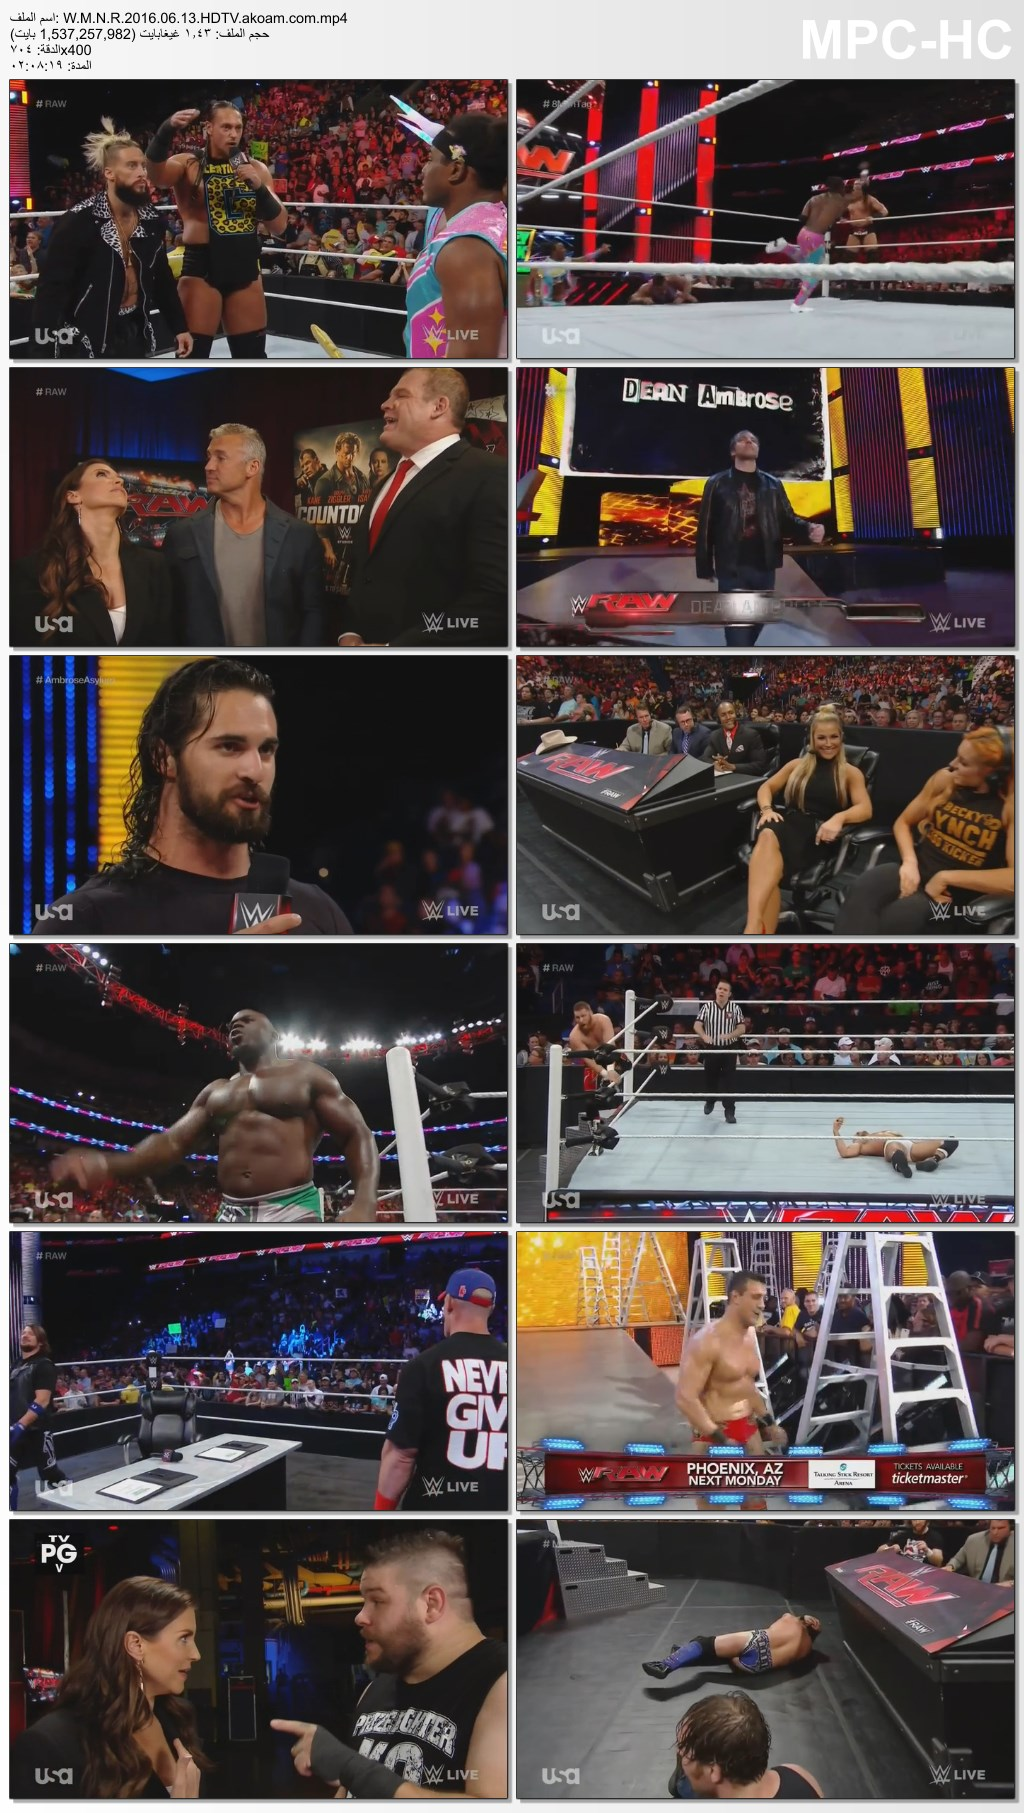 WWE Monday Night Raw,WWE,Raw,الرو,WWE Monday Night Raw 13.06.2016